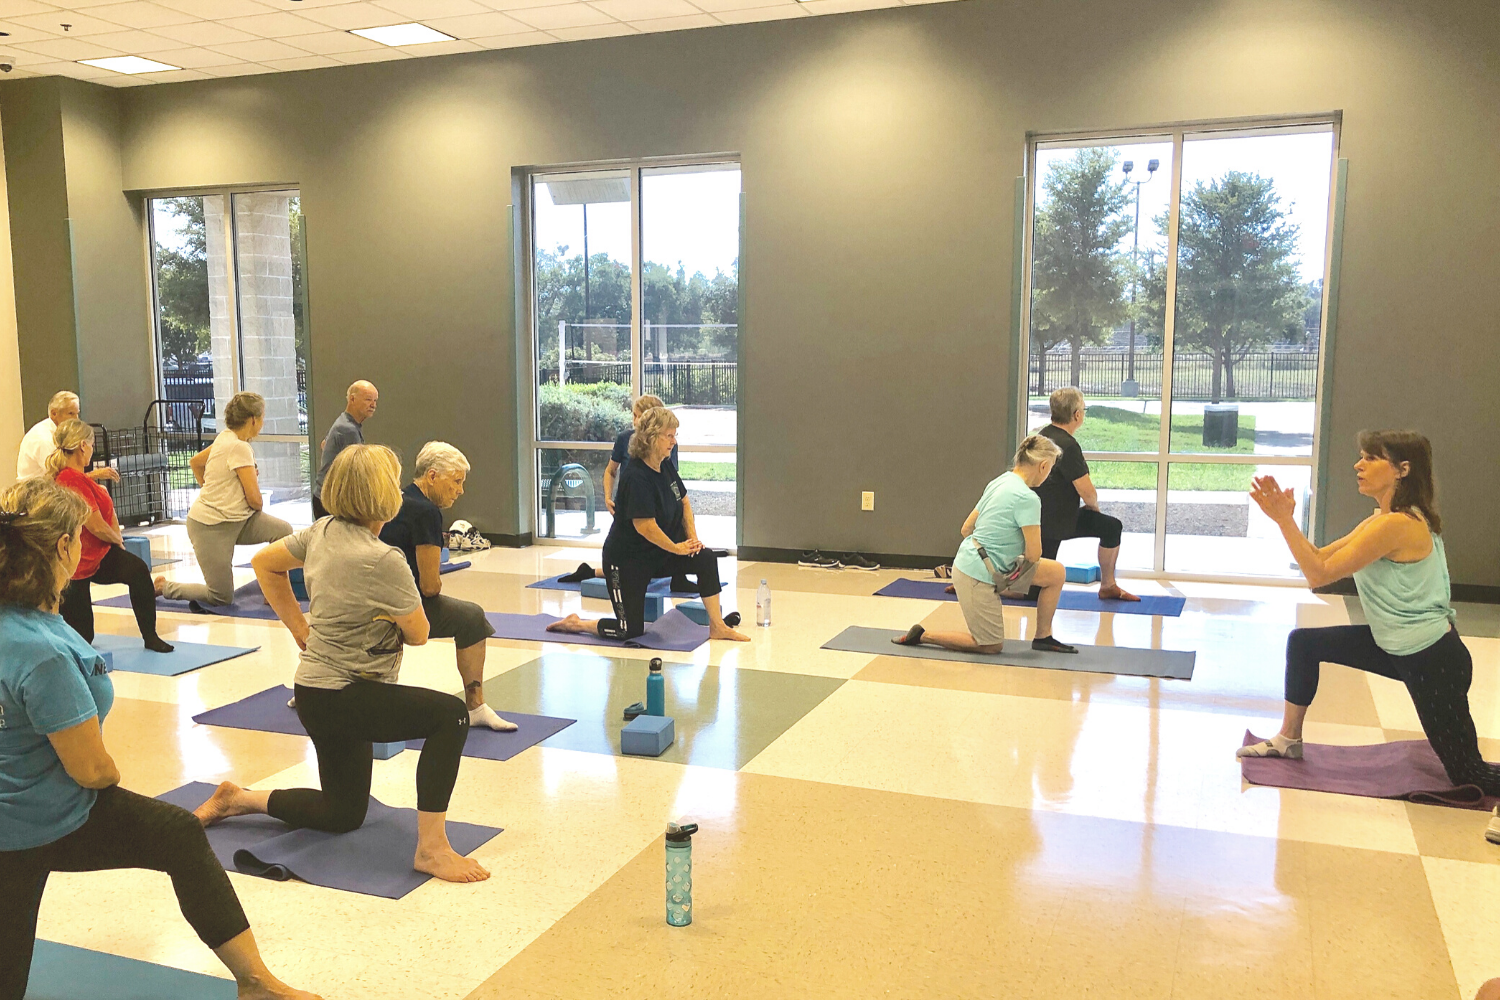 Balance and Stretch fitness class at the Georgetown Recreation Center